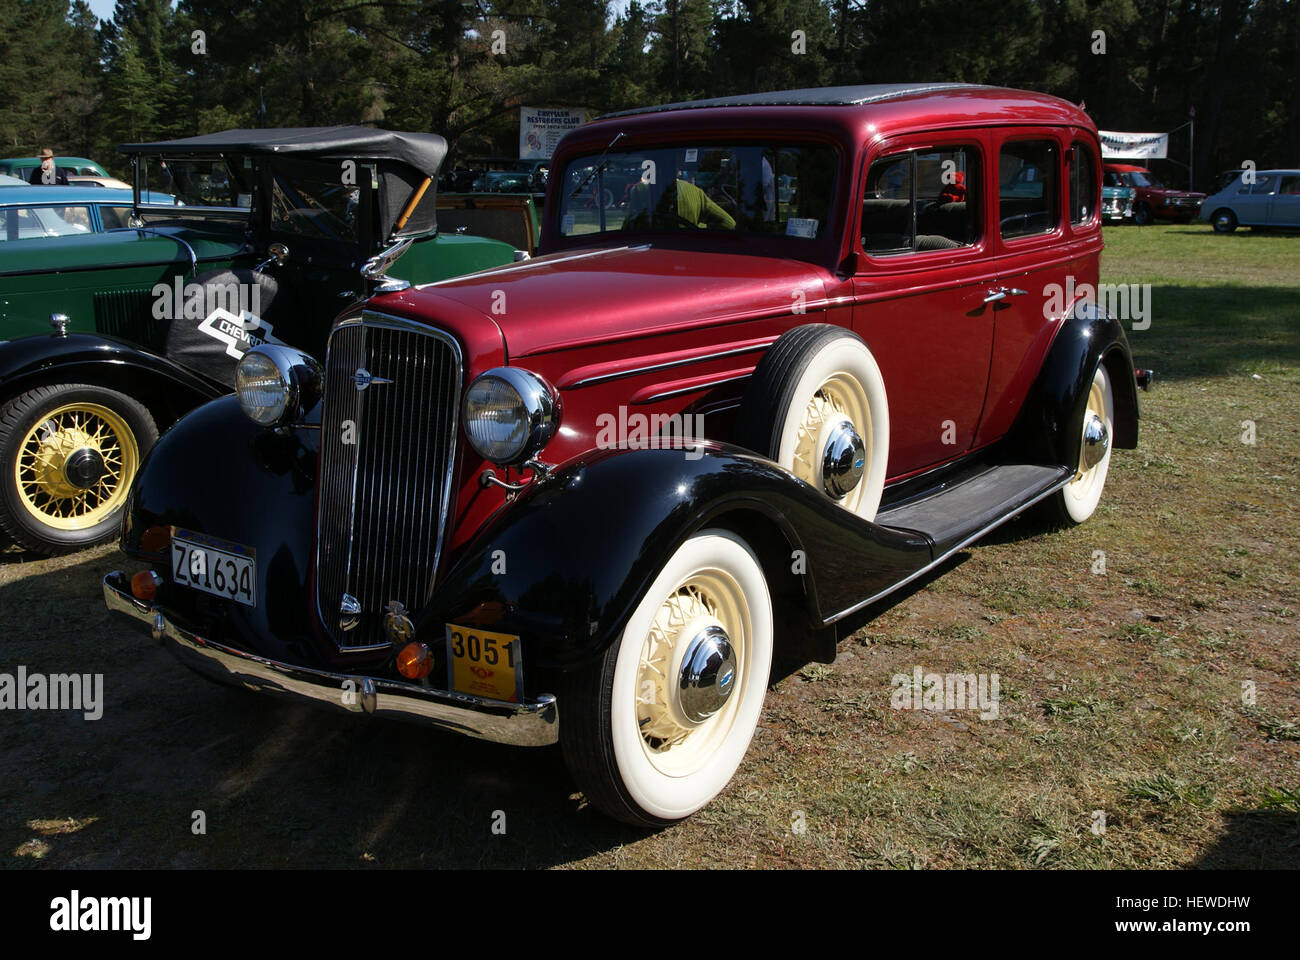 1934 Chevrolet High Resolution Stock Photography And Images Alamy